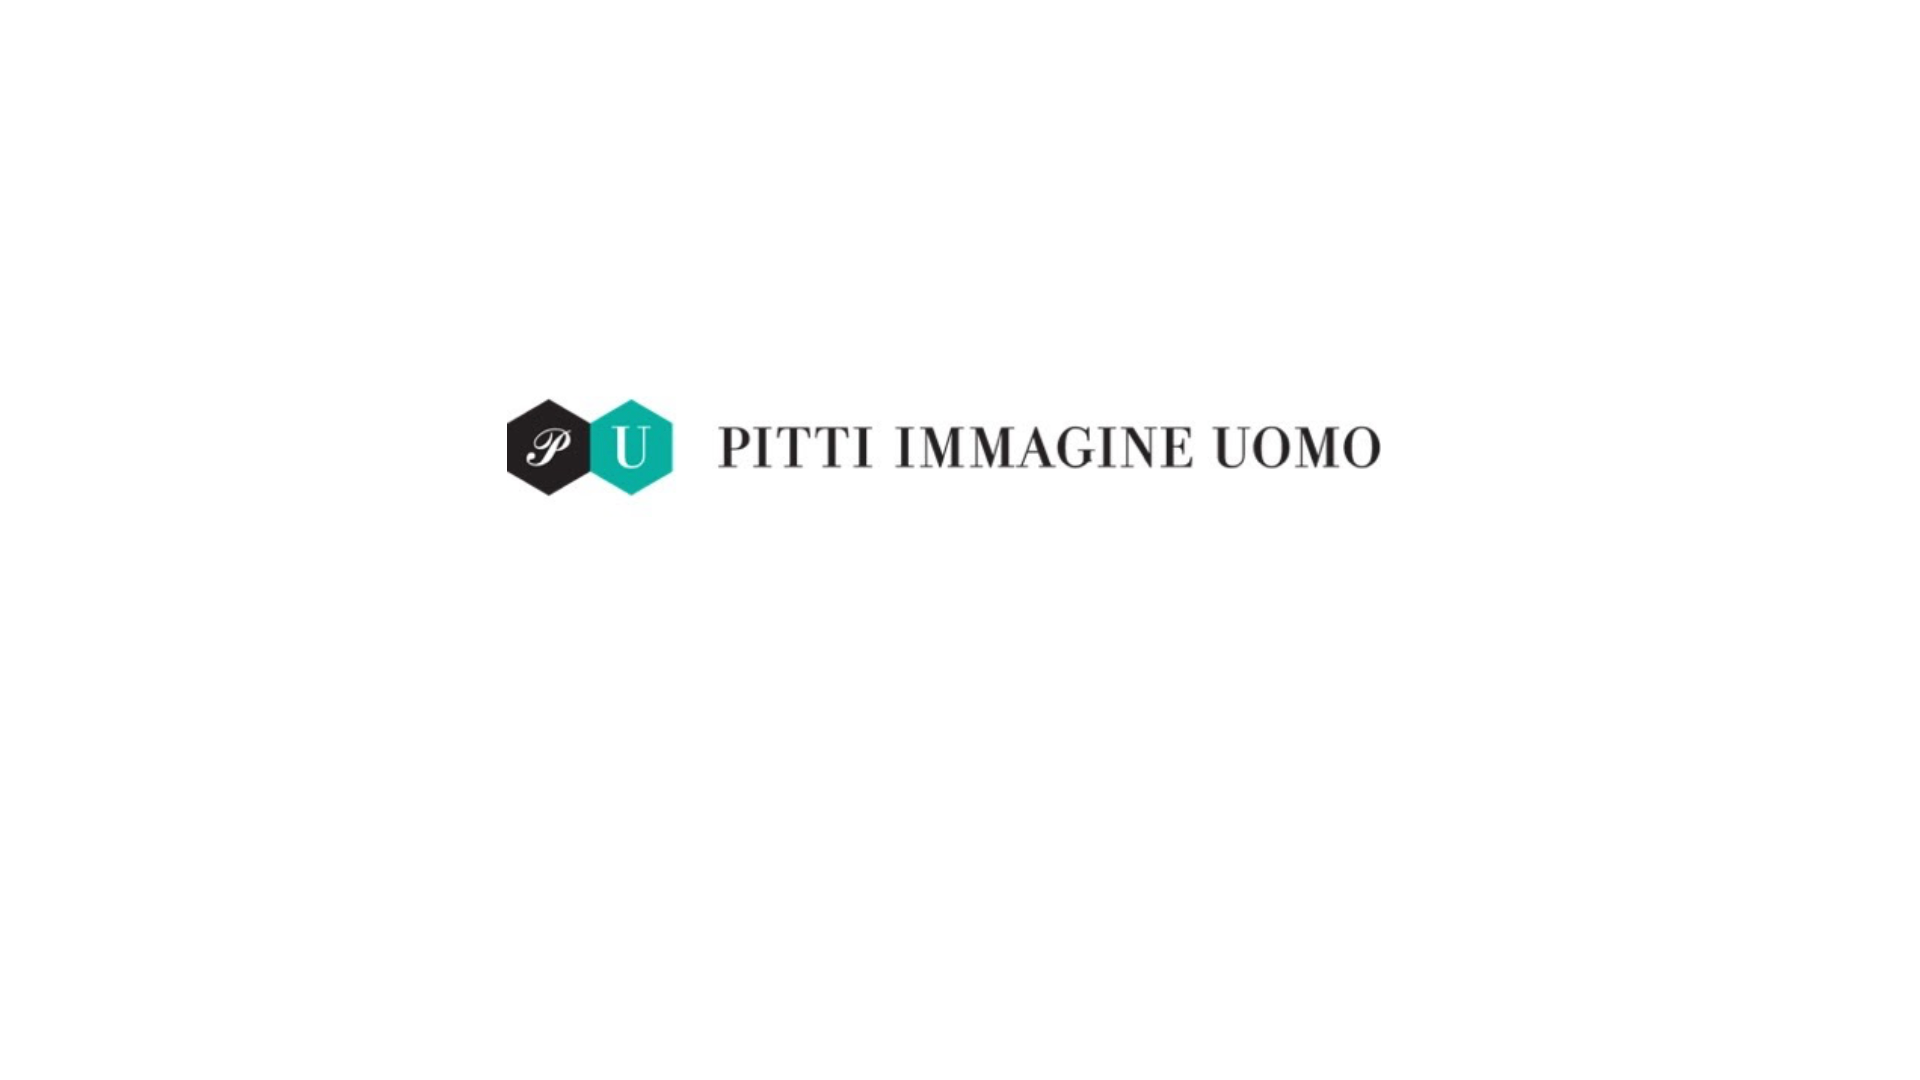 Pitti Immagine postpones its physical fairs to January 2021